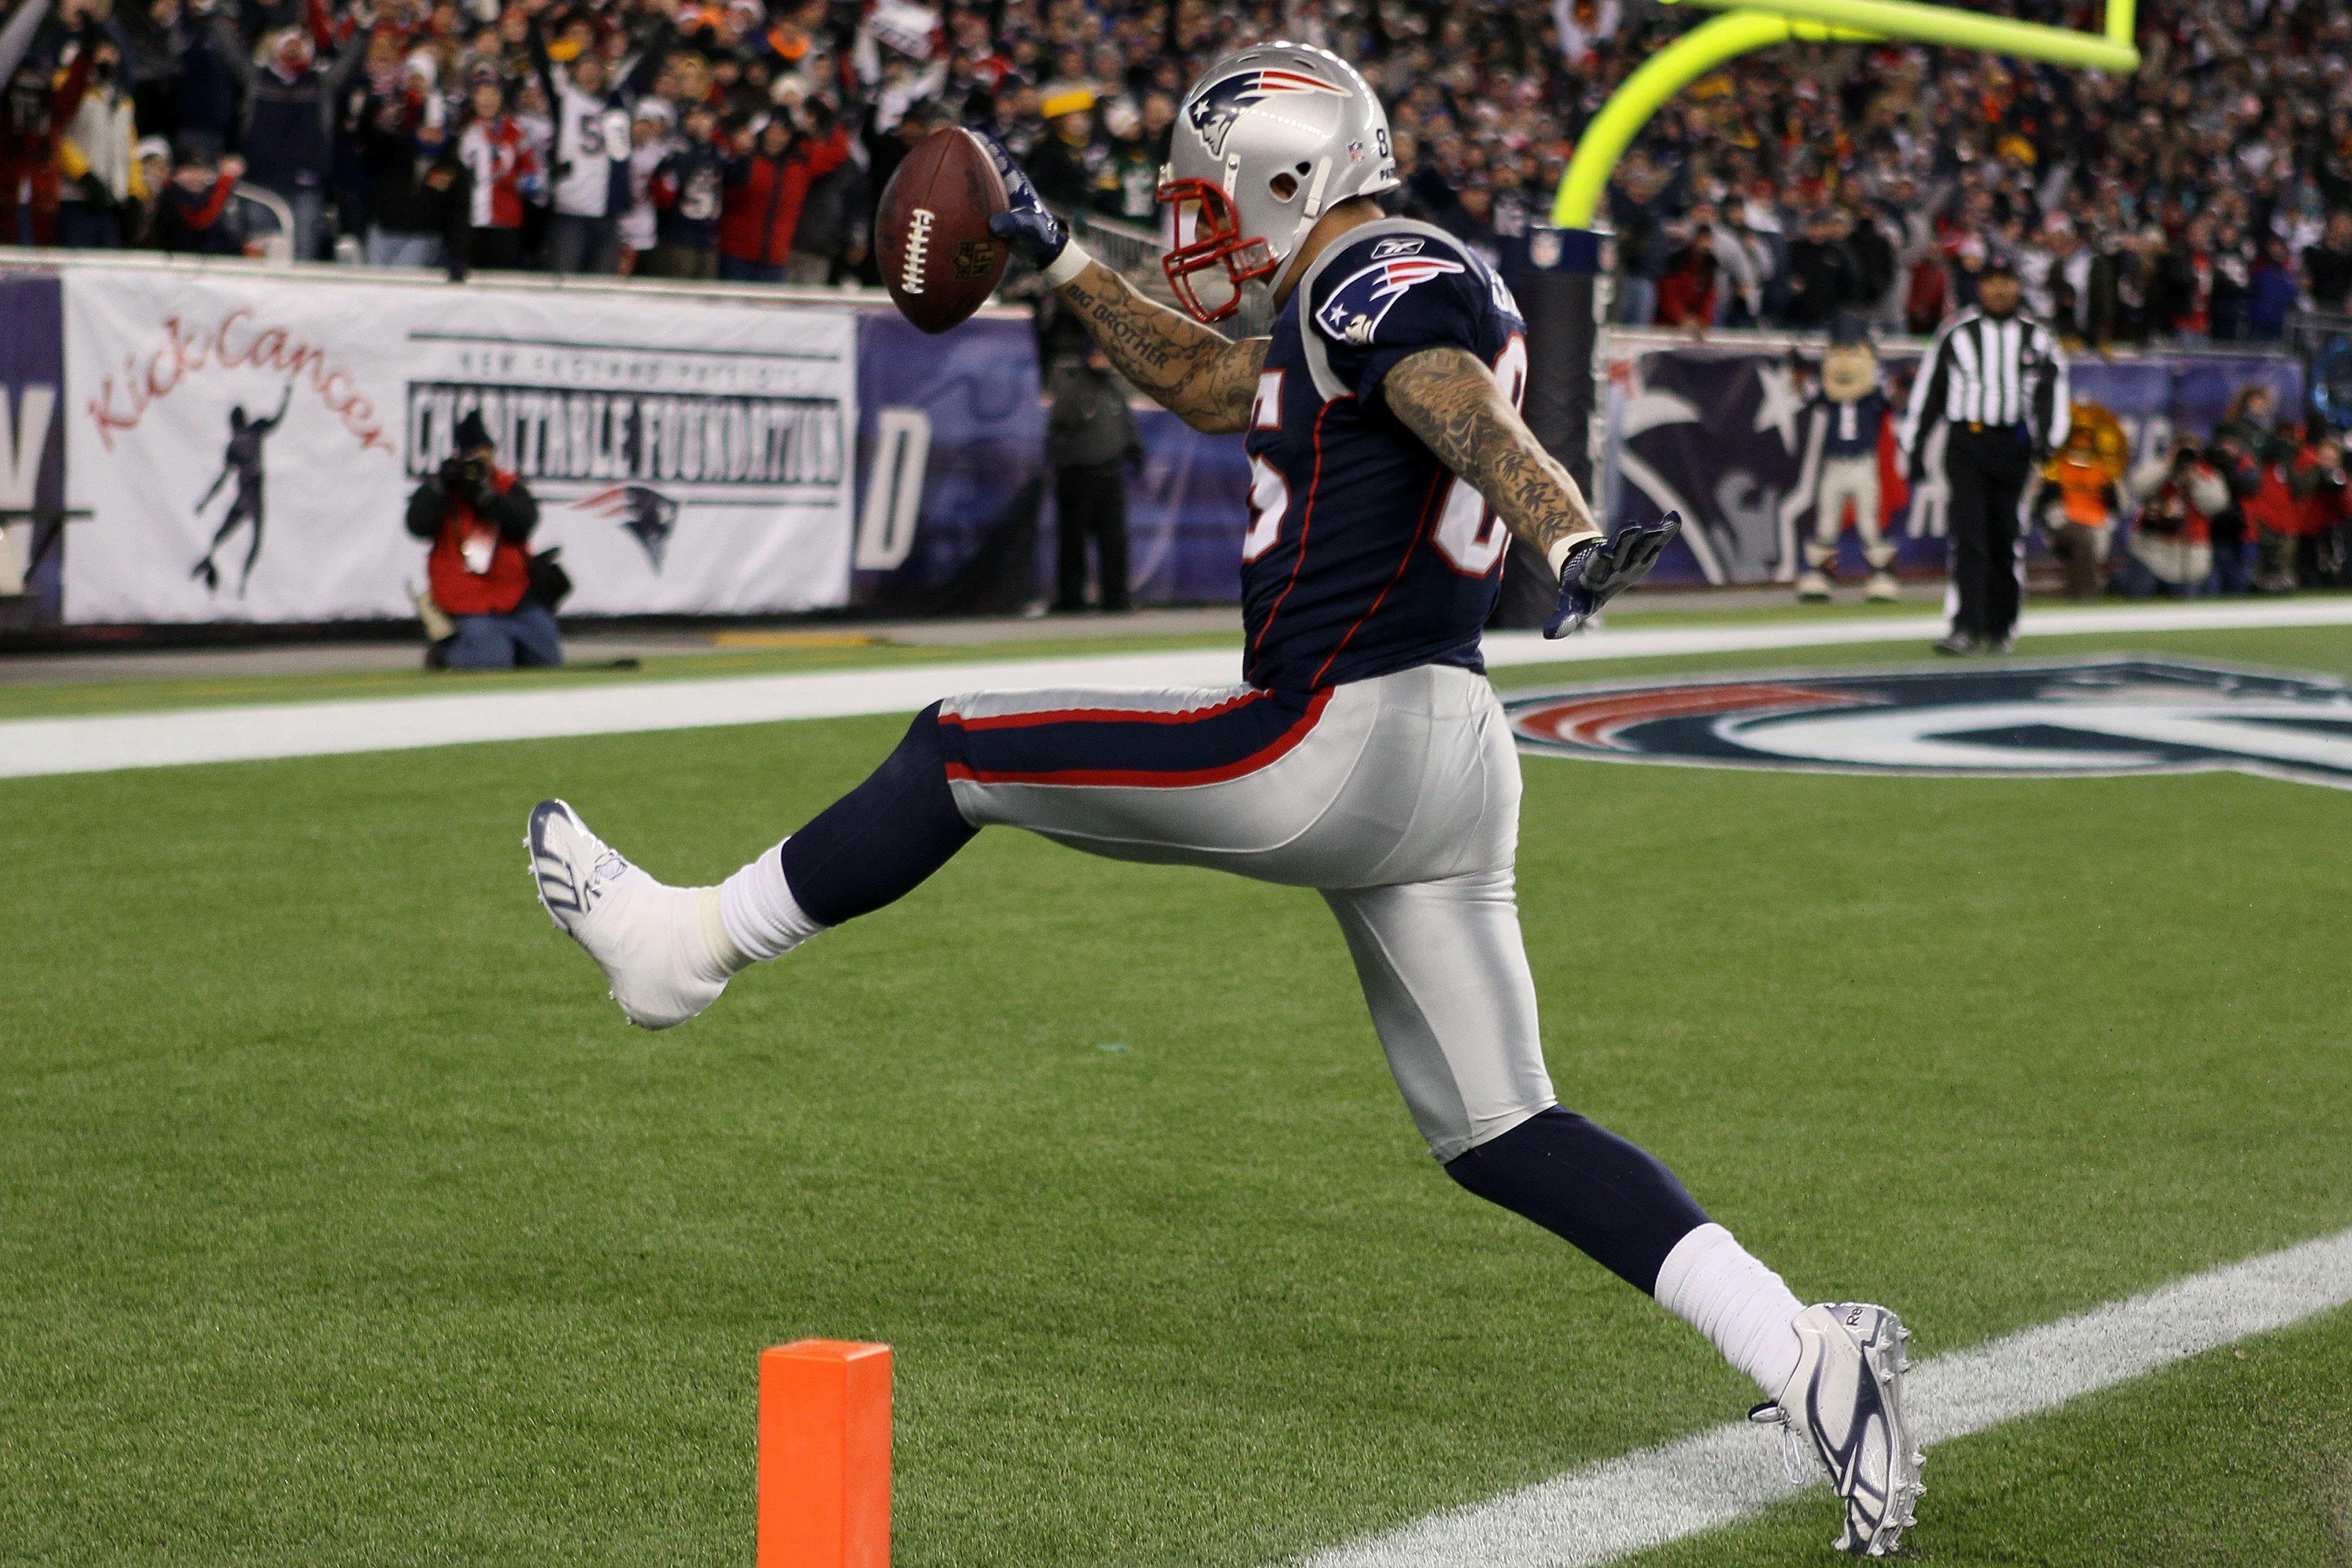 FOXBORO, MA - DECEMBER 19:  Tight end Aaron Hernandez #85 of the New England Patriots scores a touchdown after catching a pass from quarterback Tom Brady #12 (not pictured) in the fourth quarter of the game against the Green Bay Packers at Gillette Stadiu